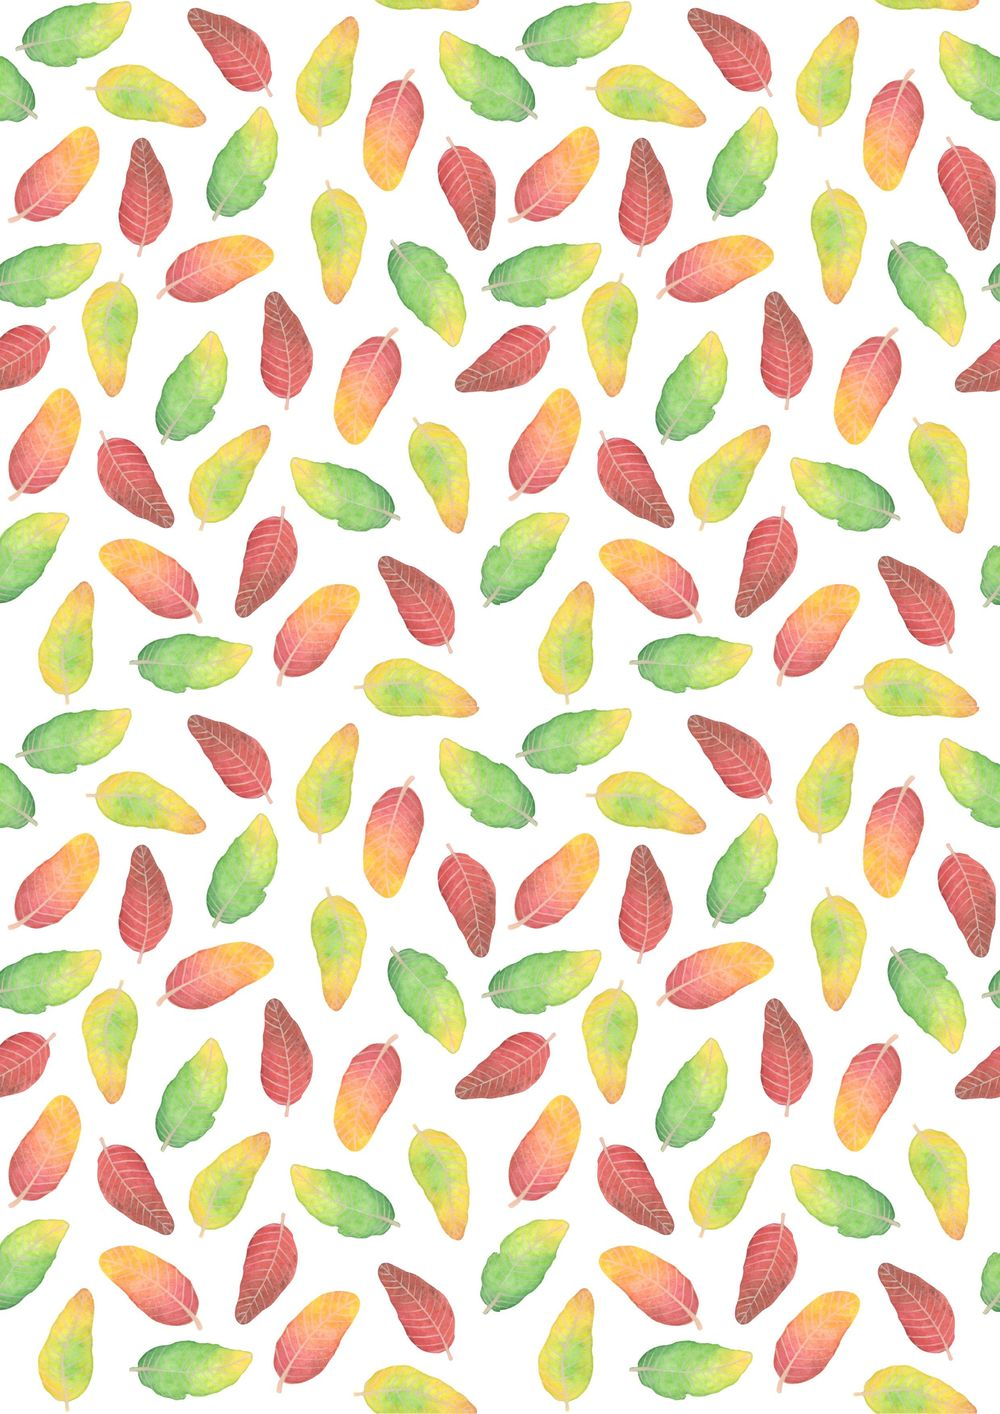 Watercolor leaves. - image 1 - student project